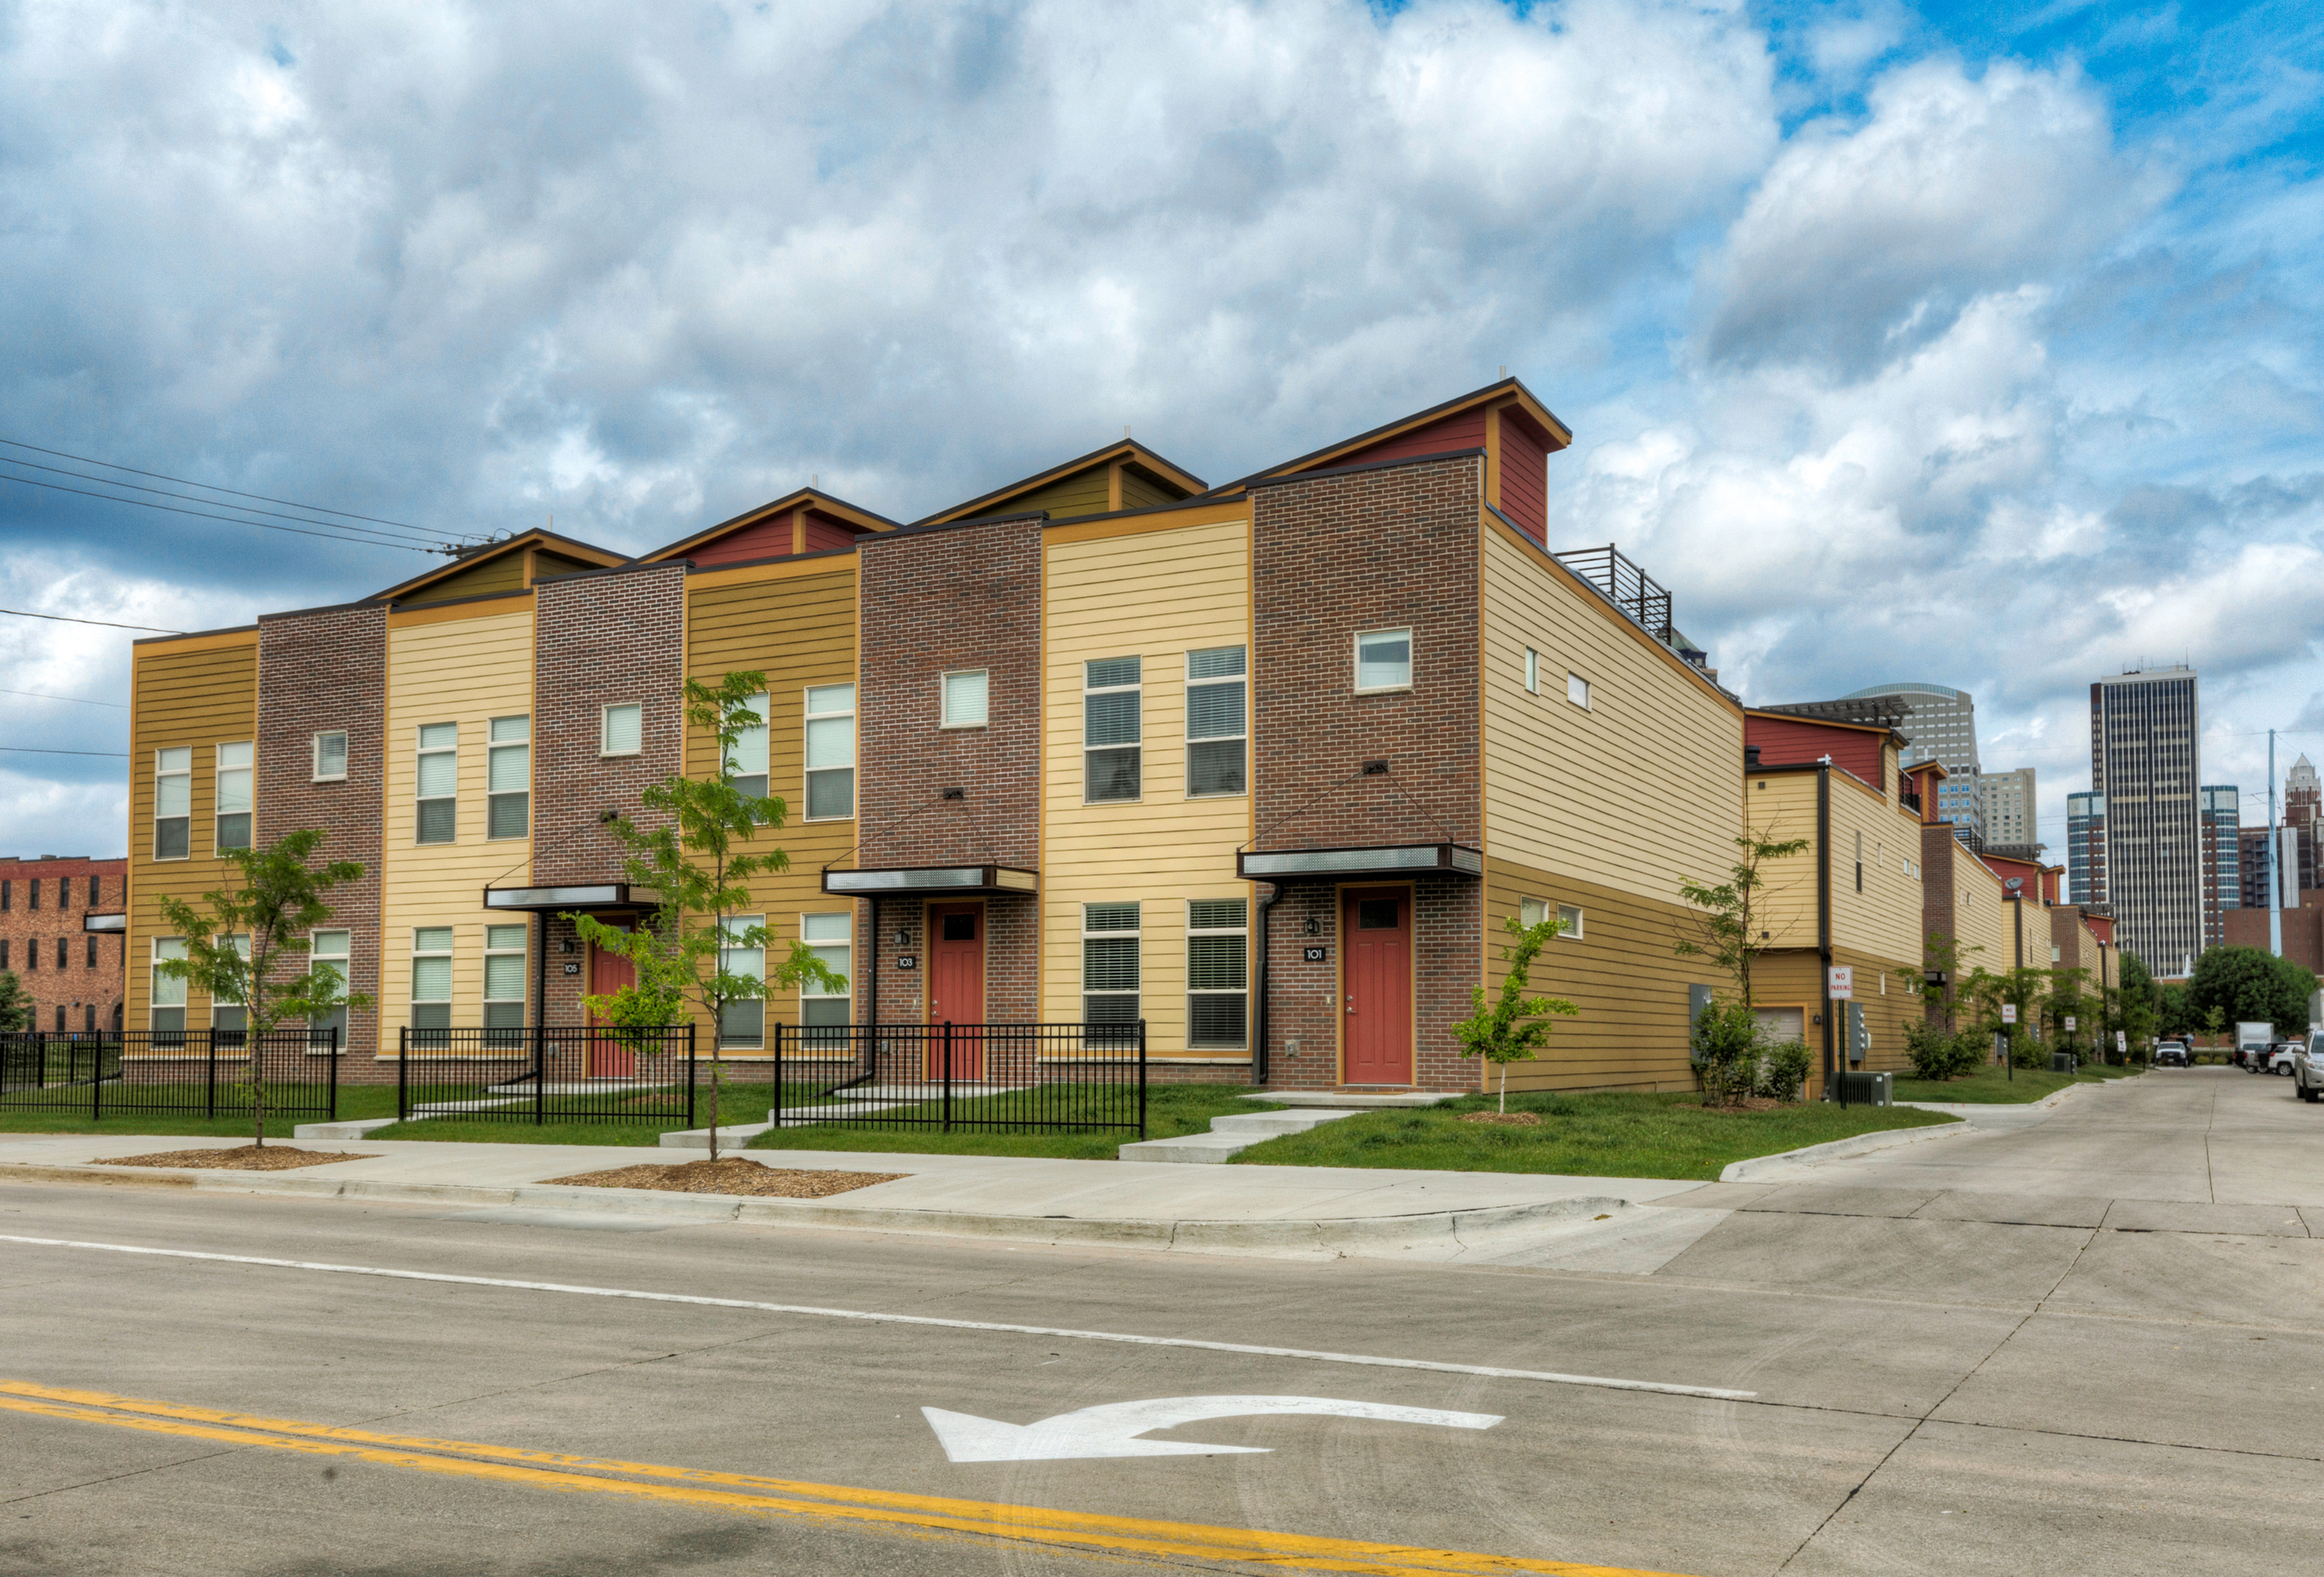 Apartments Near University of Phoenix-Iowa 7th Street Brownstones for University of Phoenix-Iowa Students in Des Moines, IA